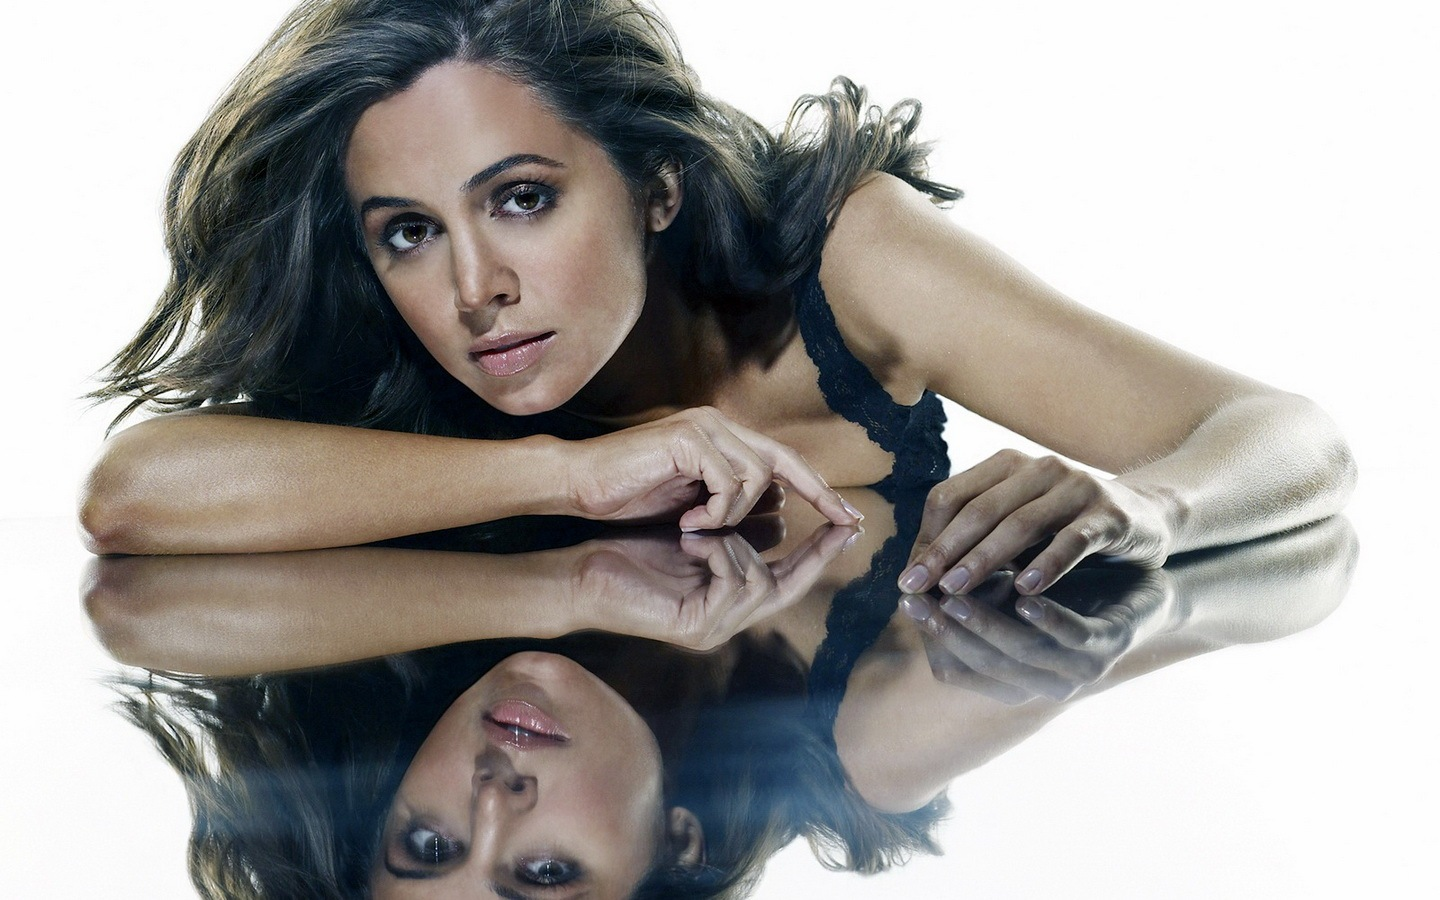 [Eliza Dushku 1440x900 13 unique desktop wallpapers[2].jpg]